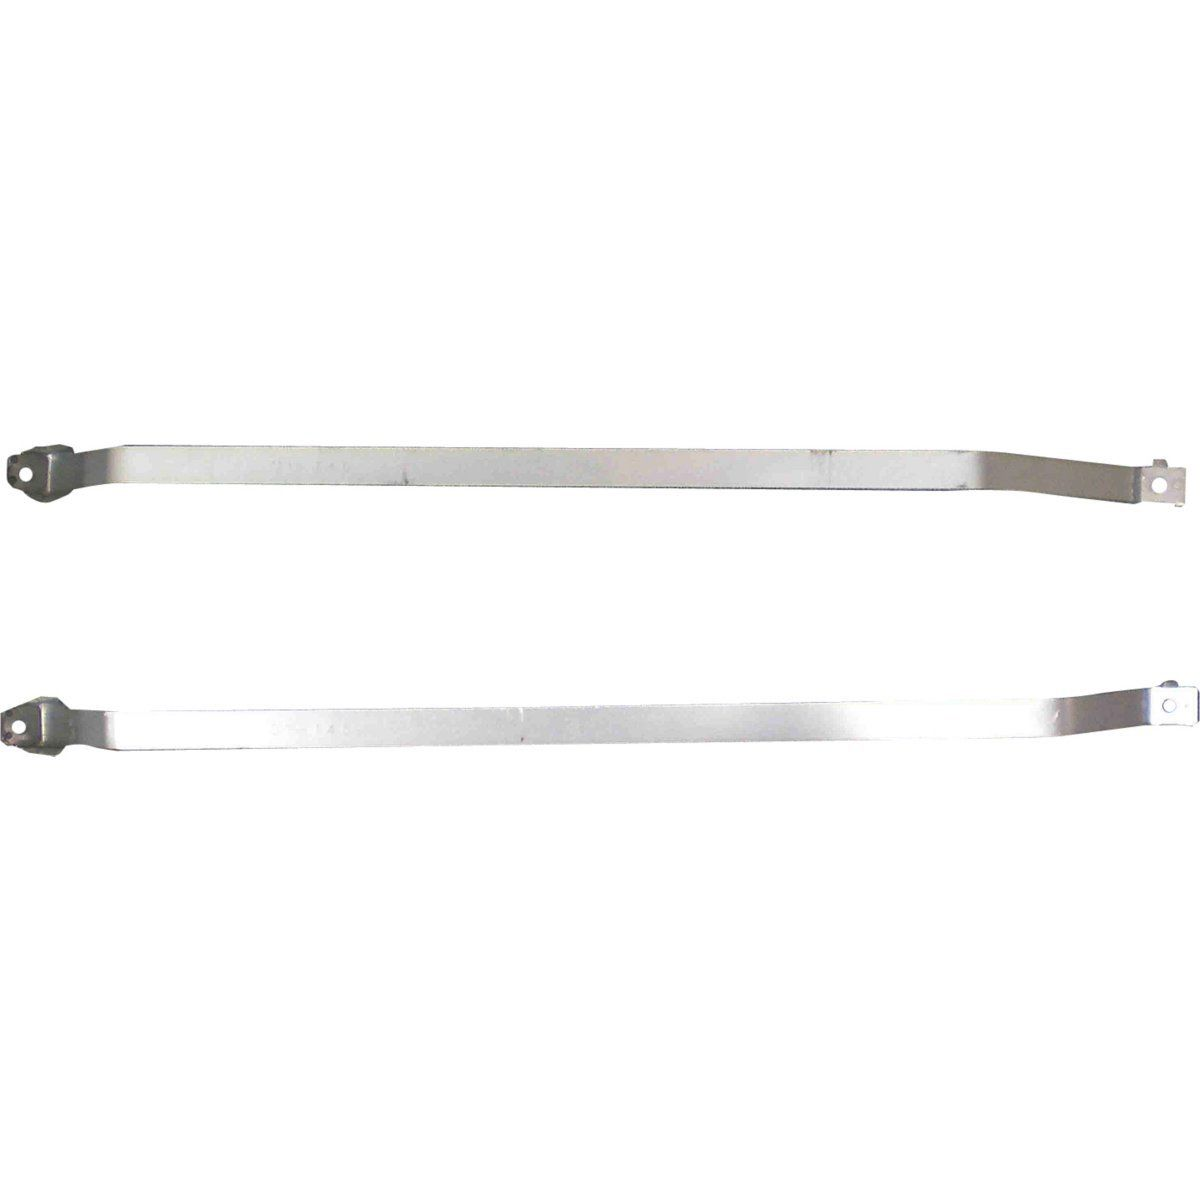 New Set Of 2 Fuel Tank Straps Gas For Honda Accord Acura